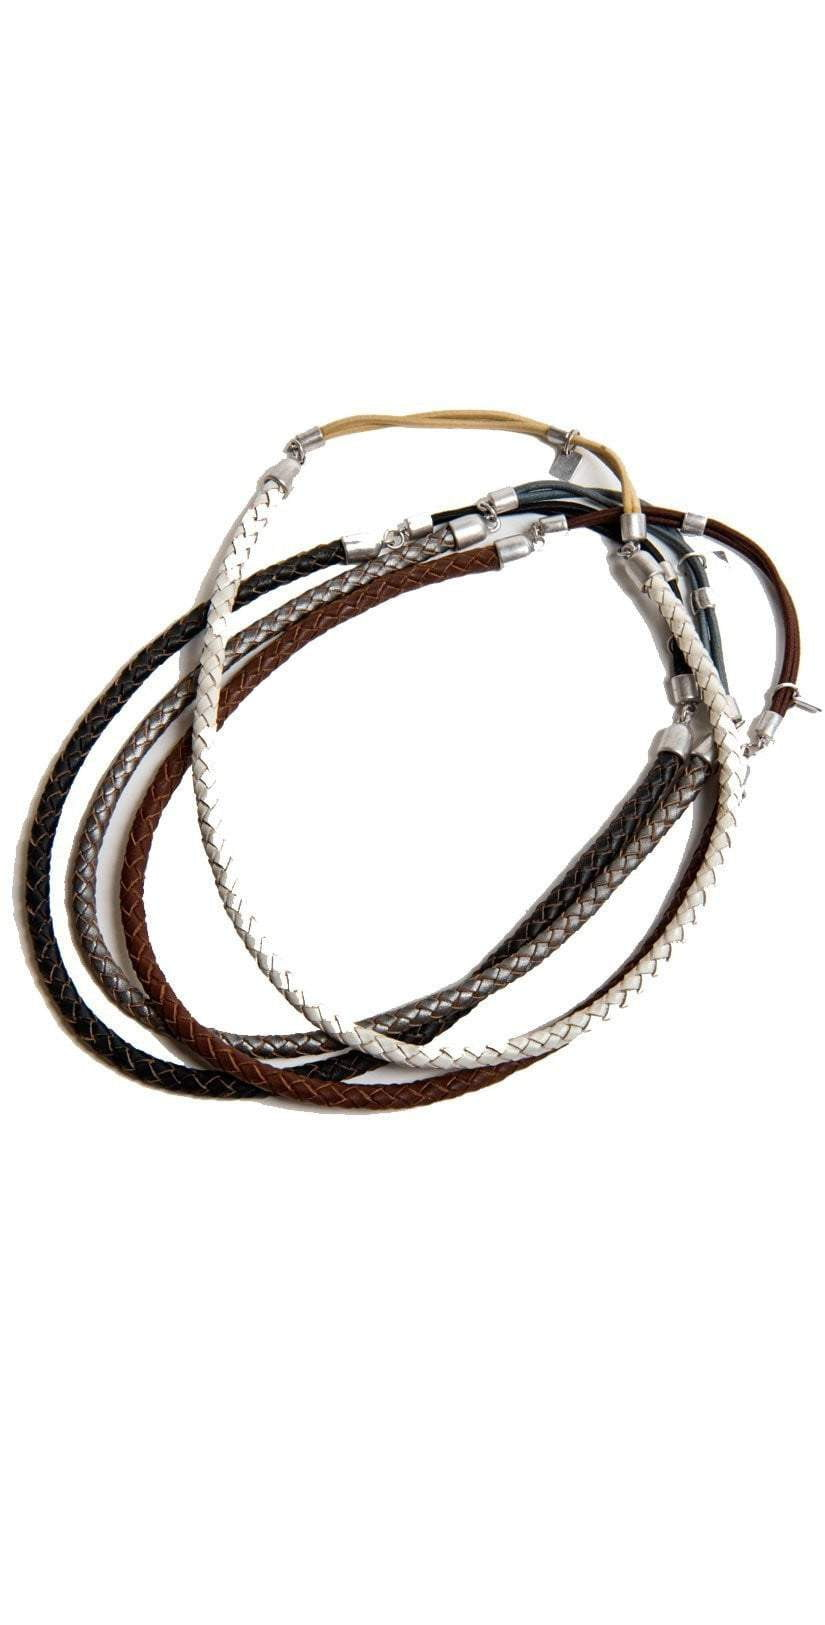 Ficcare Single Braided Leather Headband in Black B978: